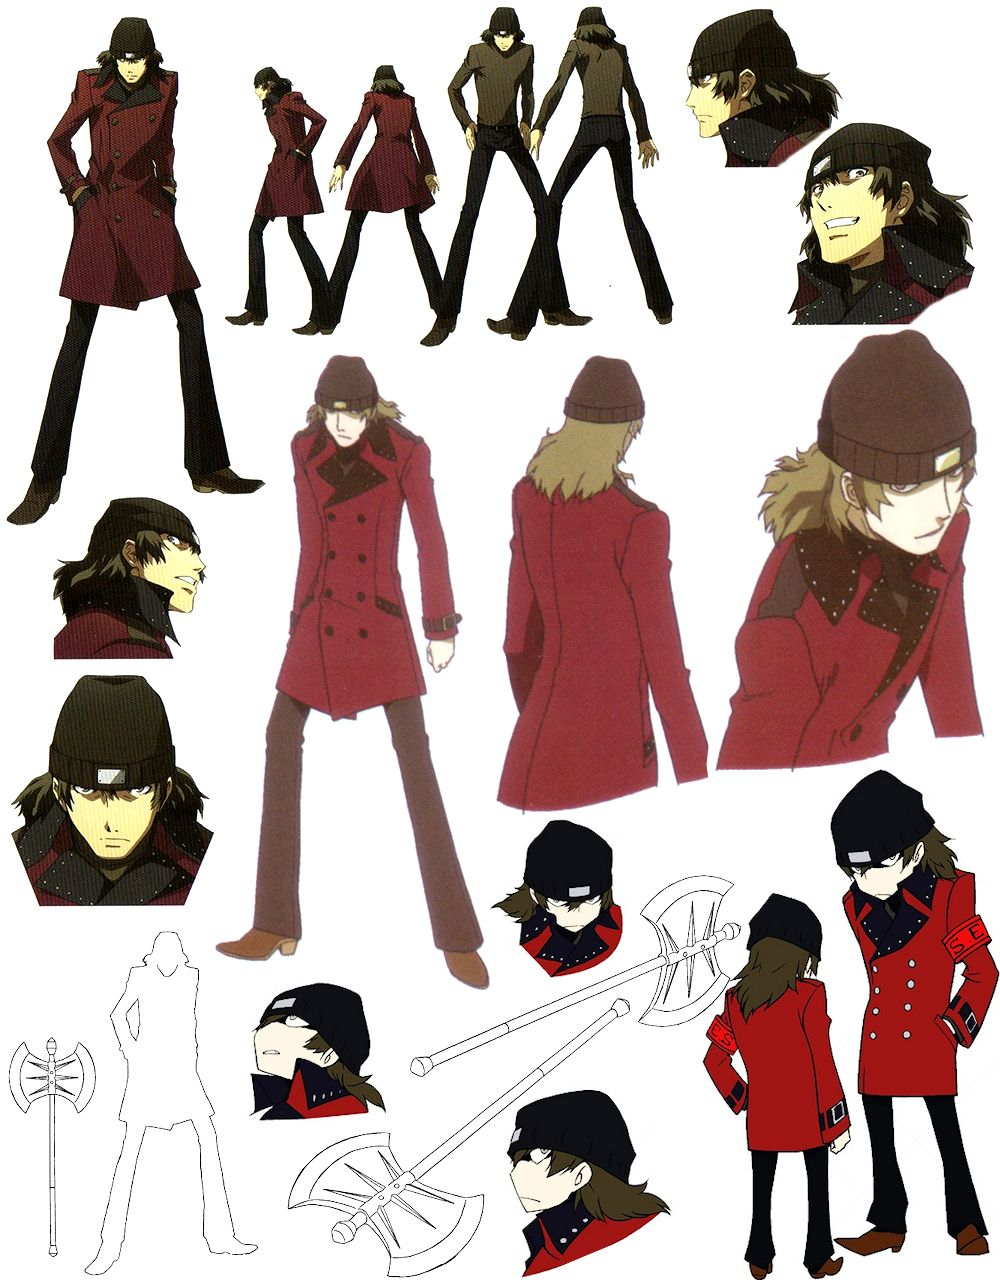 Persona 3 - Shinjiro Aragaki | Model Sheets and references